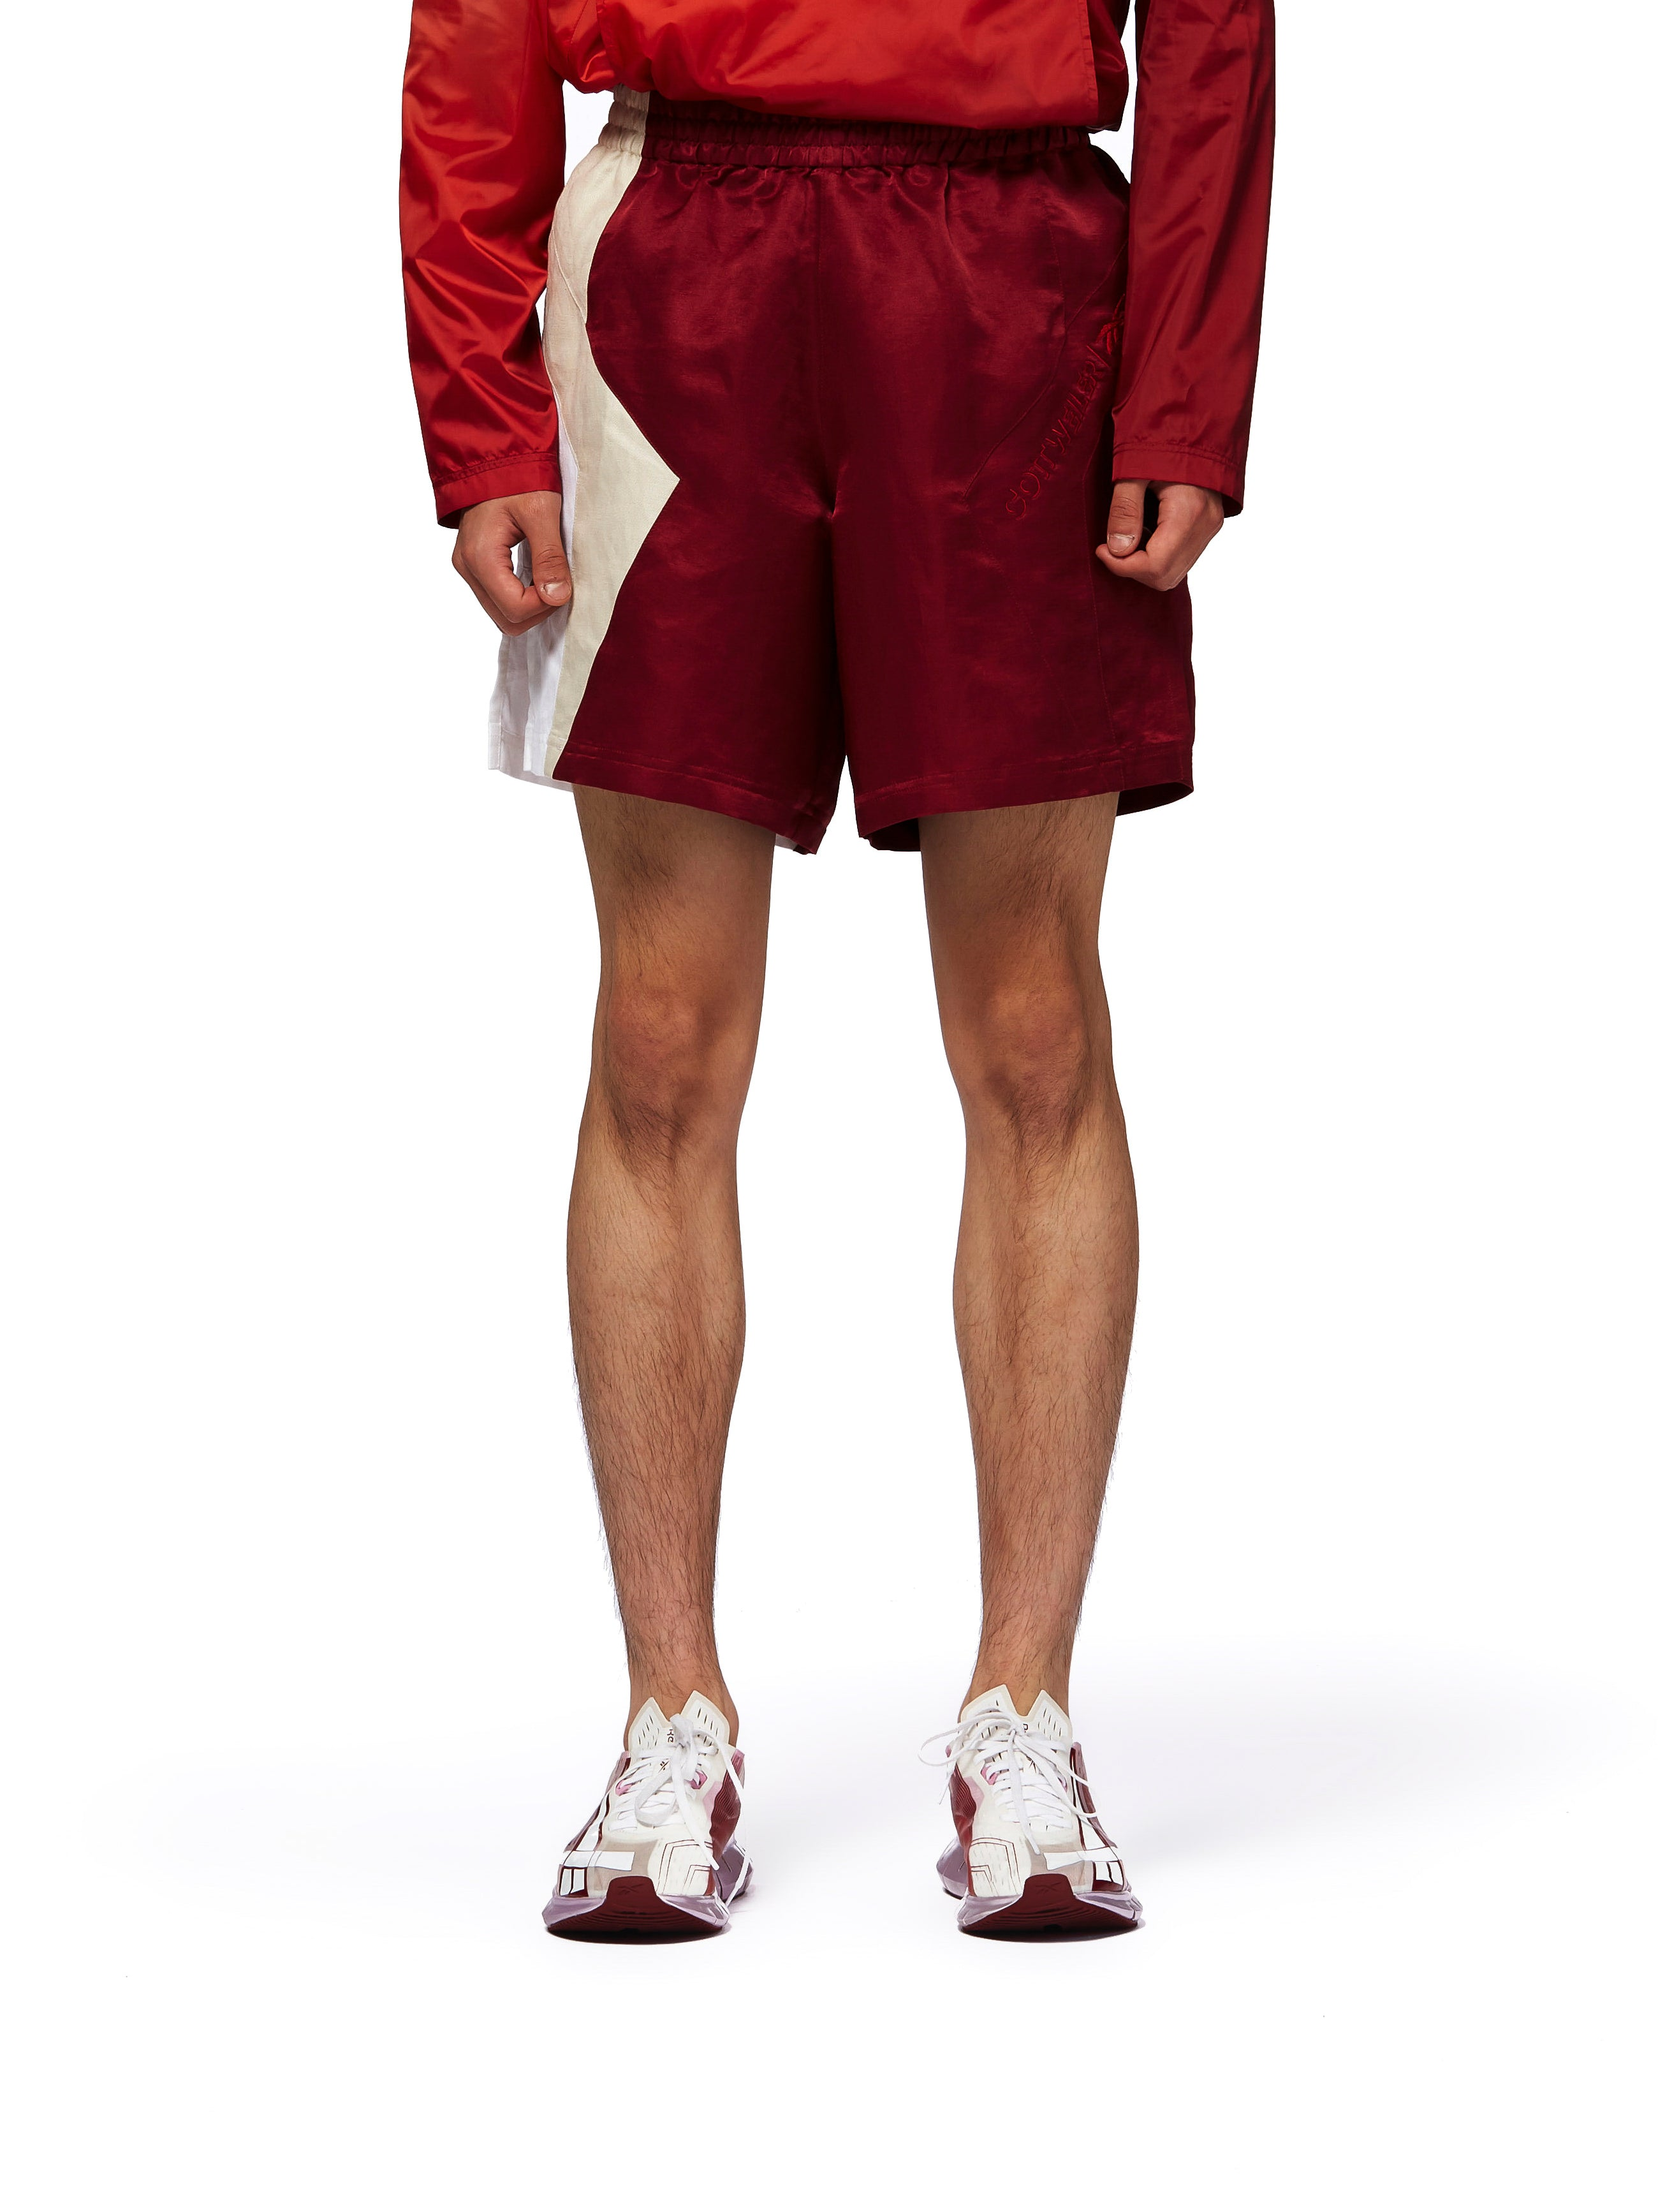 COTTWEILER FOR REEBOK R&C SHORTS - RED